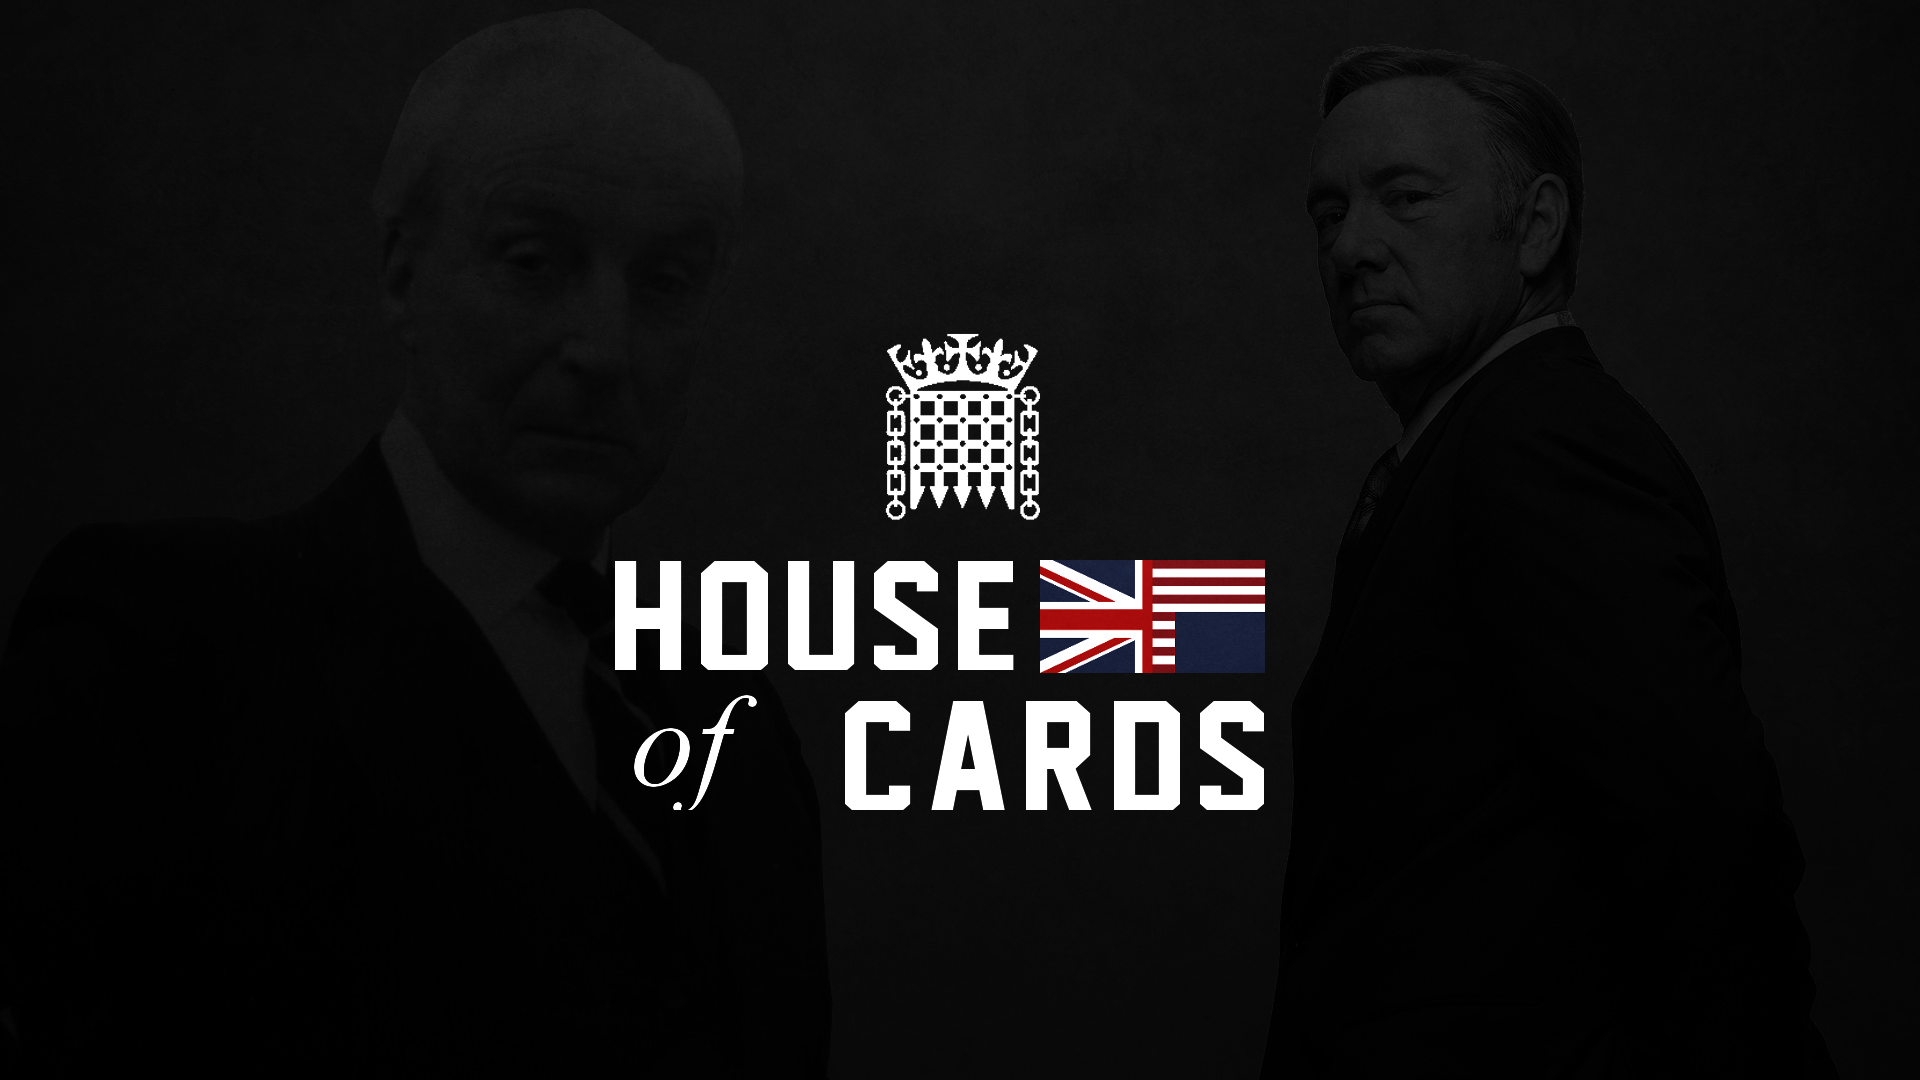 House Of Cards Iphone Wallpaper 1920 1080 House Of Cards Wallpapers